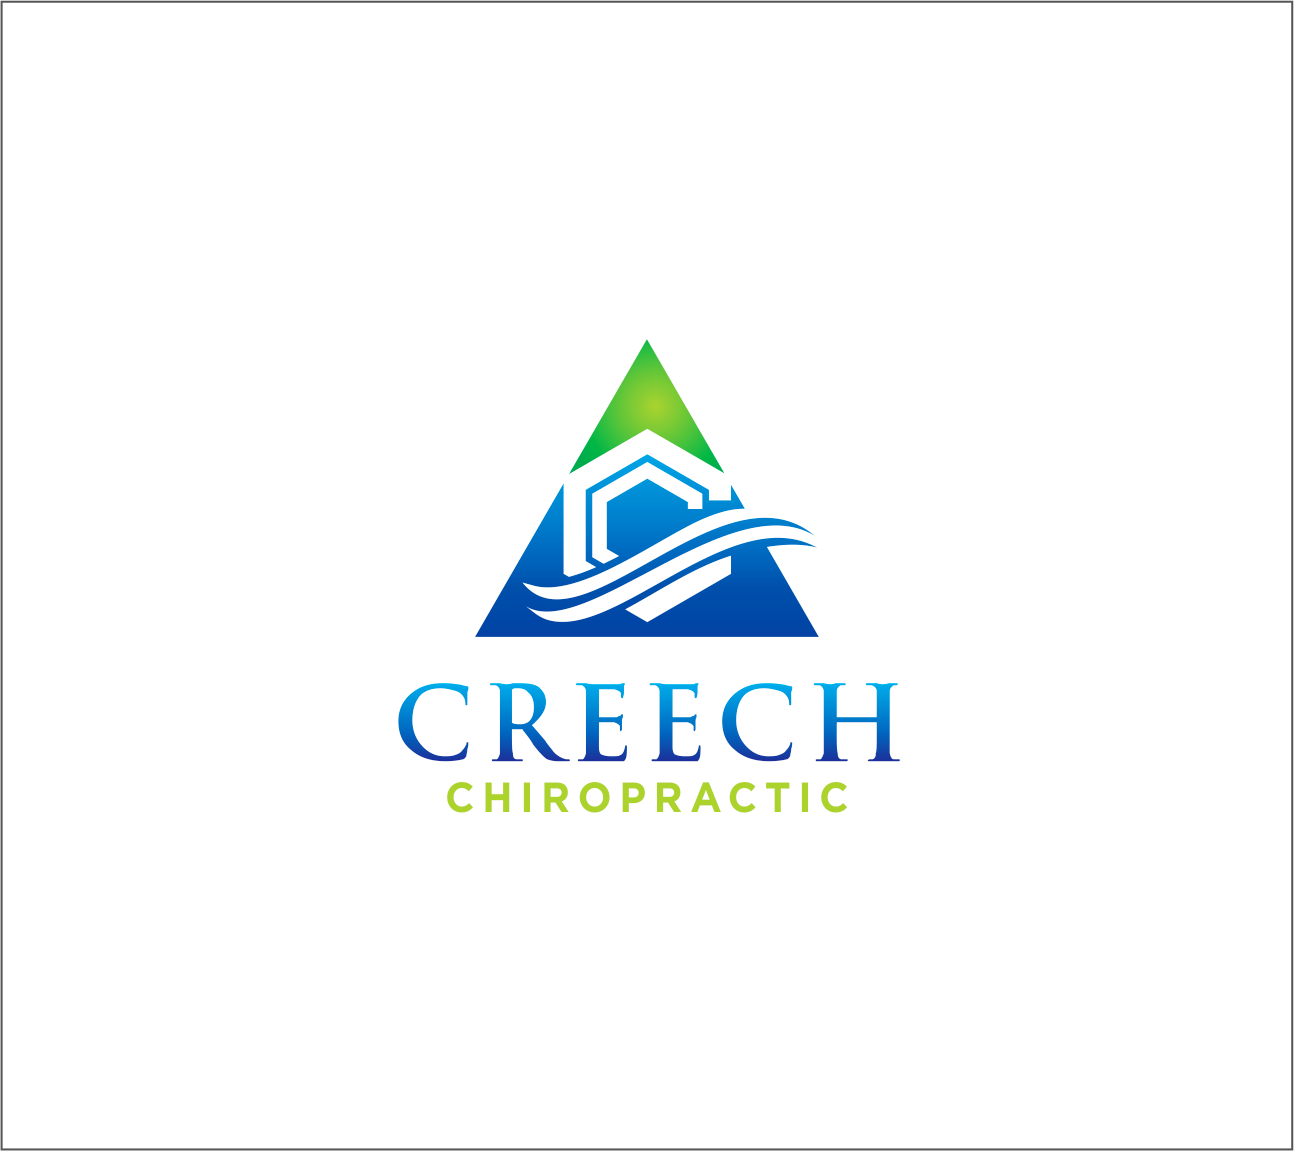 Logo Design by Armada Jamaluddin - Entry No. 93 in the Logo Design Contest Imaginative Logo Design for Creech Chiropractic.